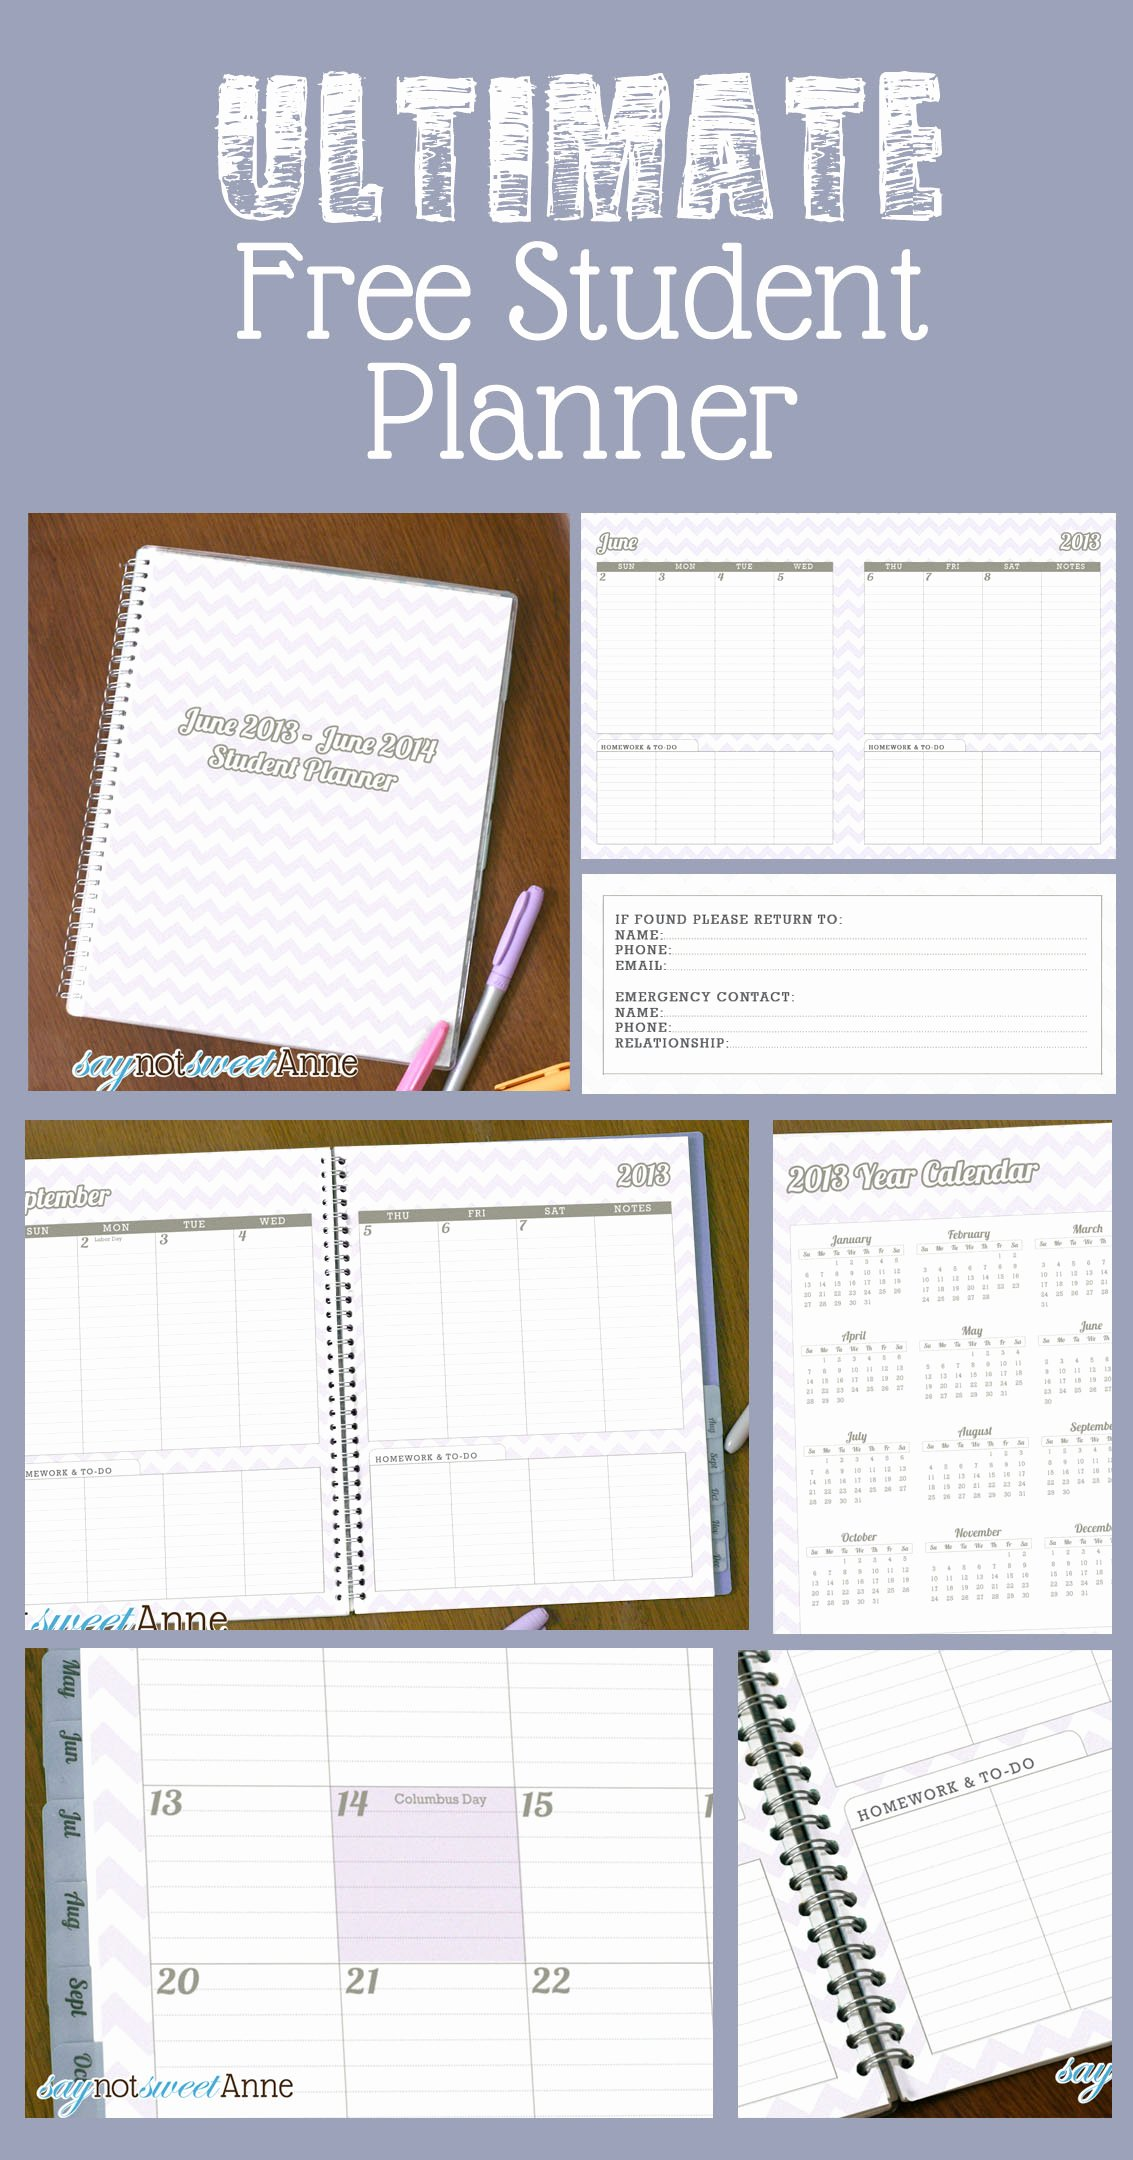 Printable Homework Planner for College Students Beautiful June to June Student Planner [2013 School Year] Sweet